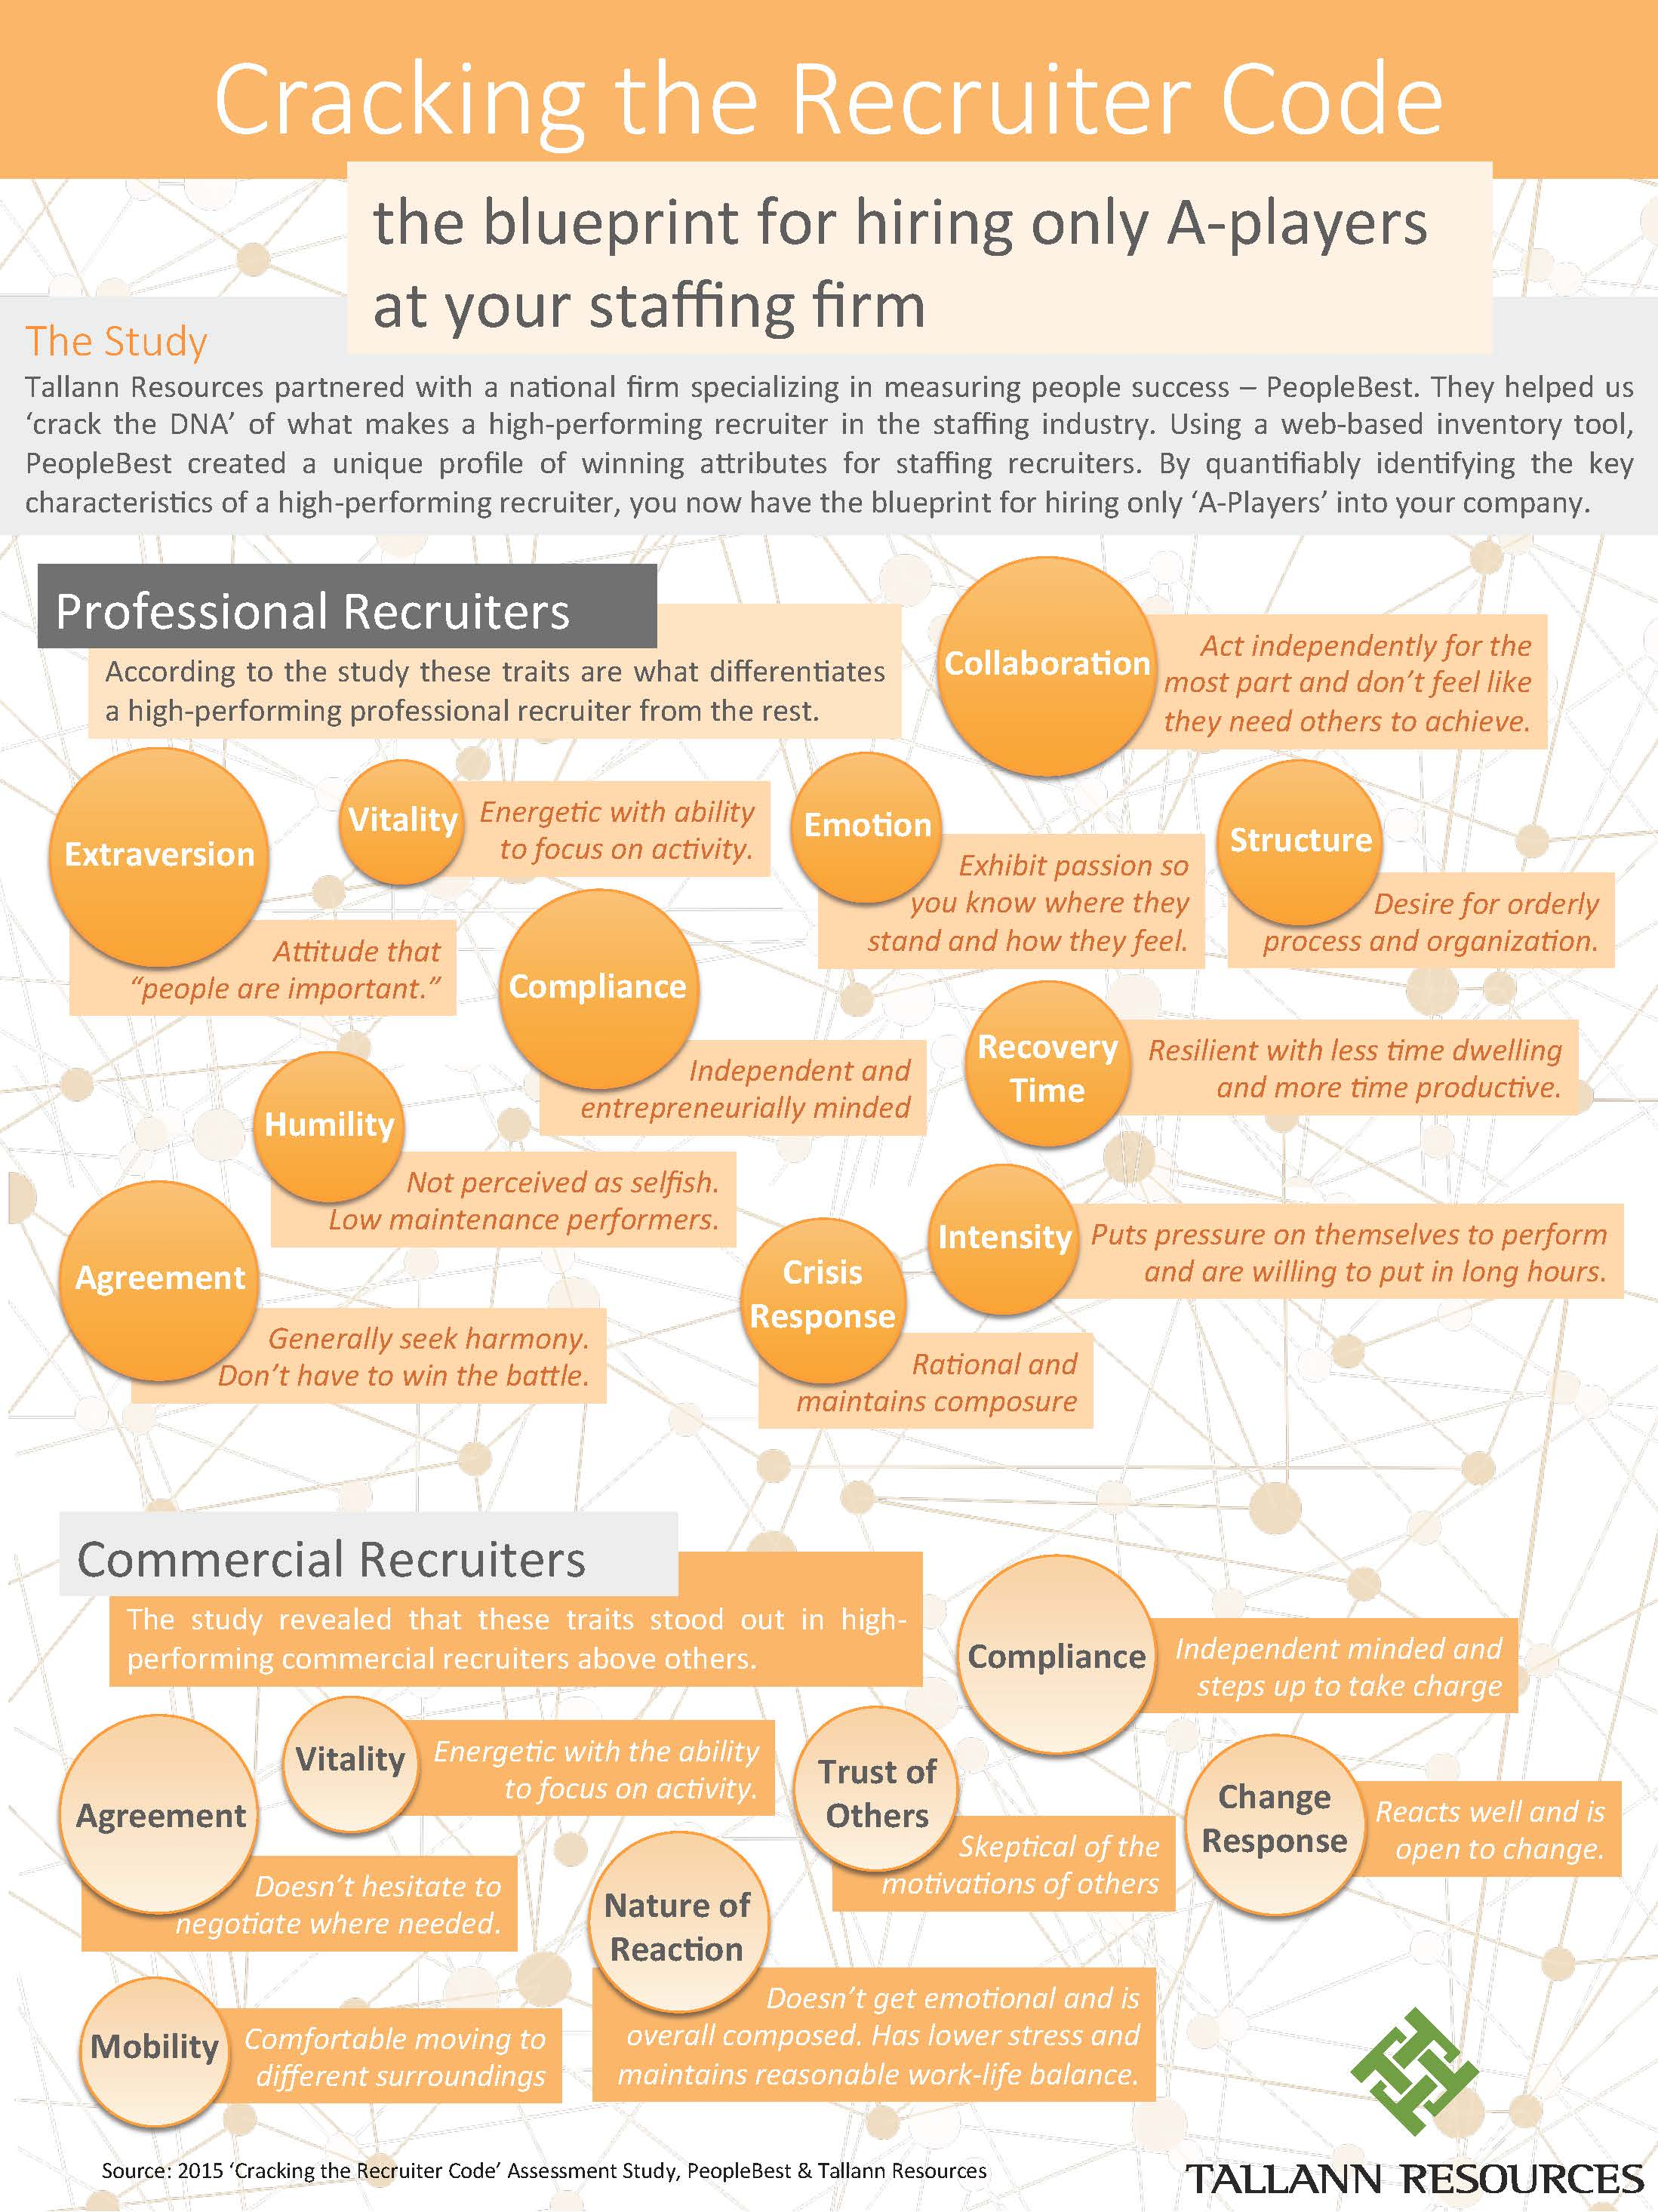 Cracking_the_Recruiter_Code_-_Infographic.jpg